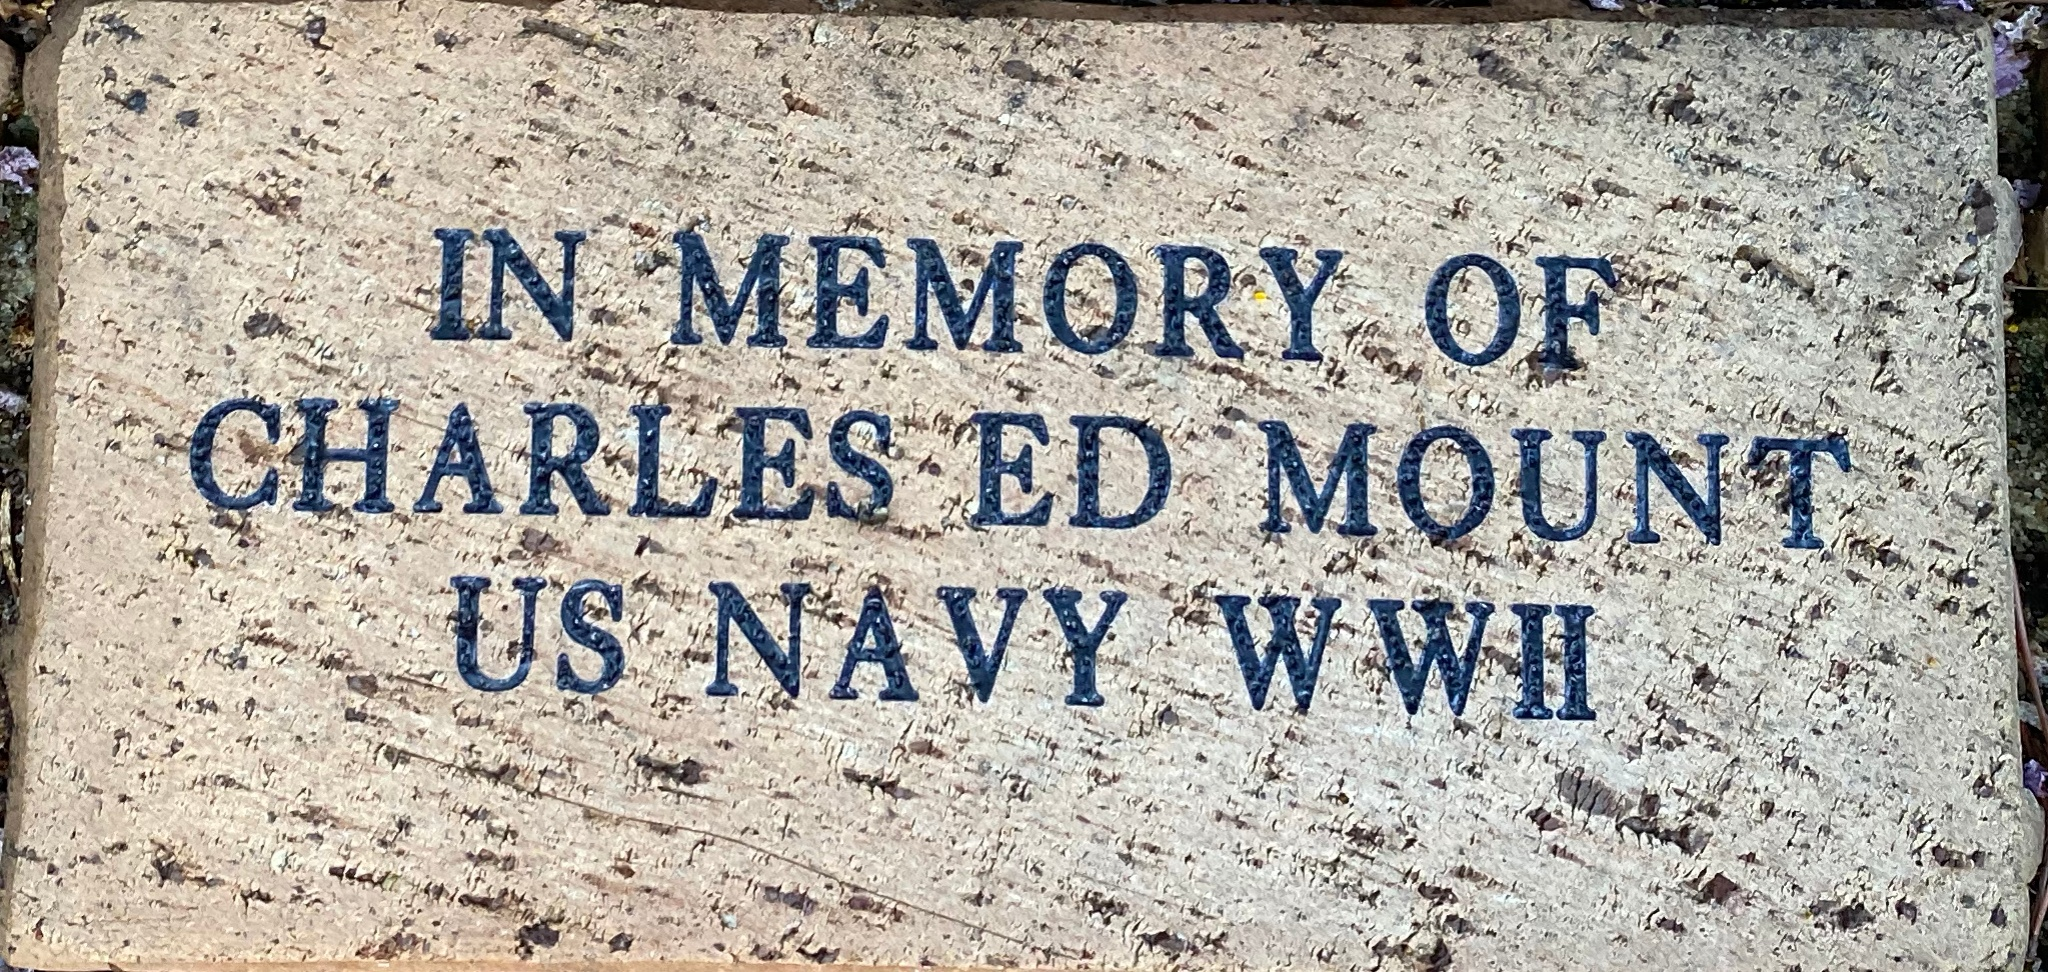 IN MEMORY OF  CHARLES ED MOUNT US NAVY WWII